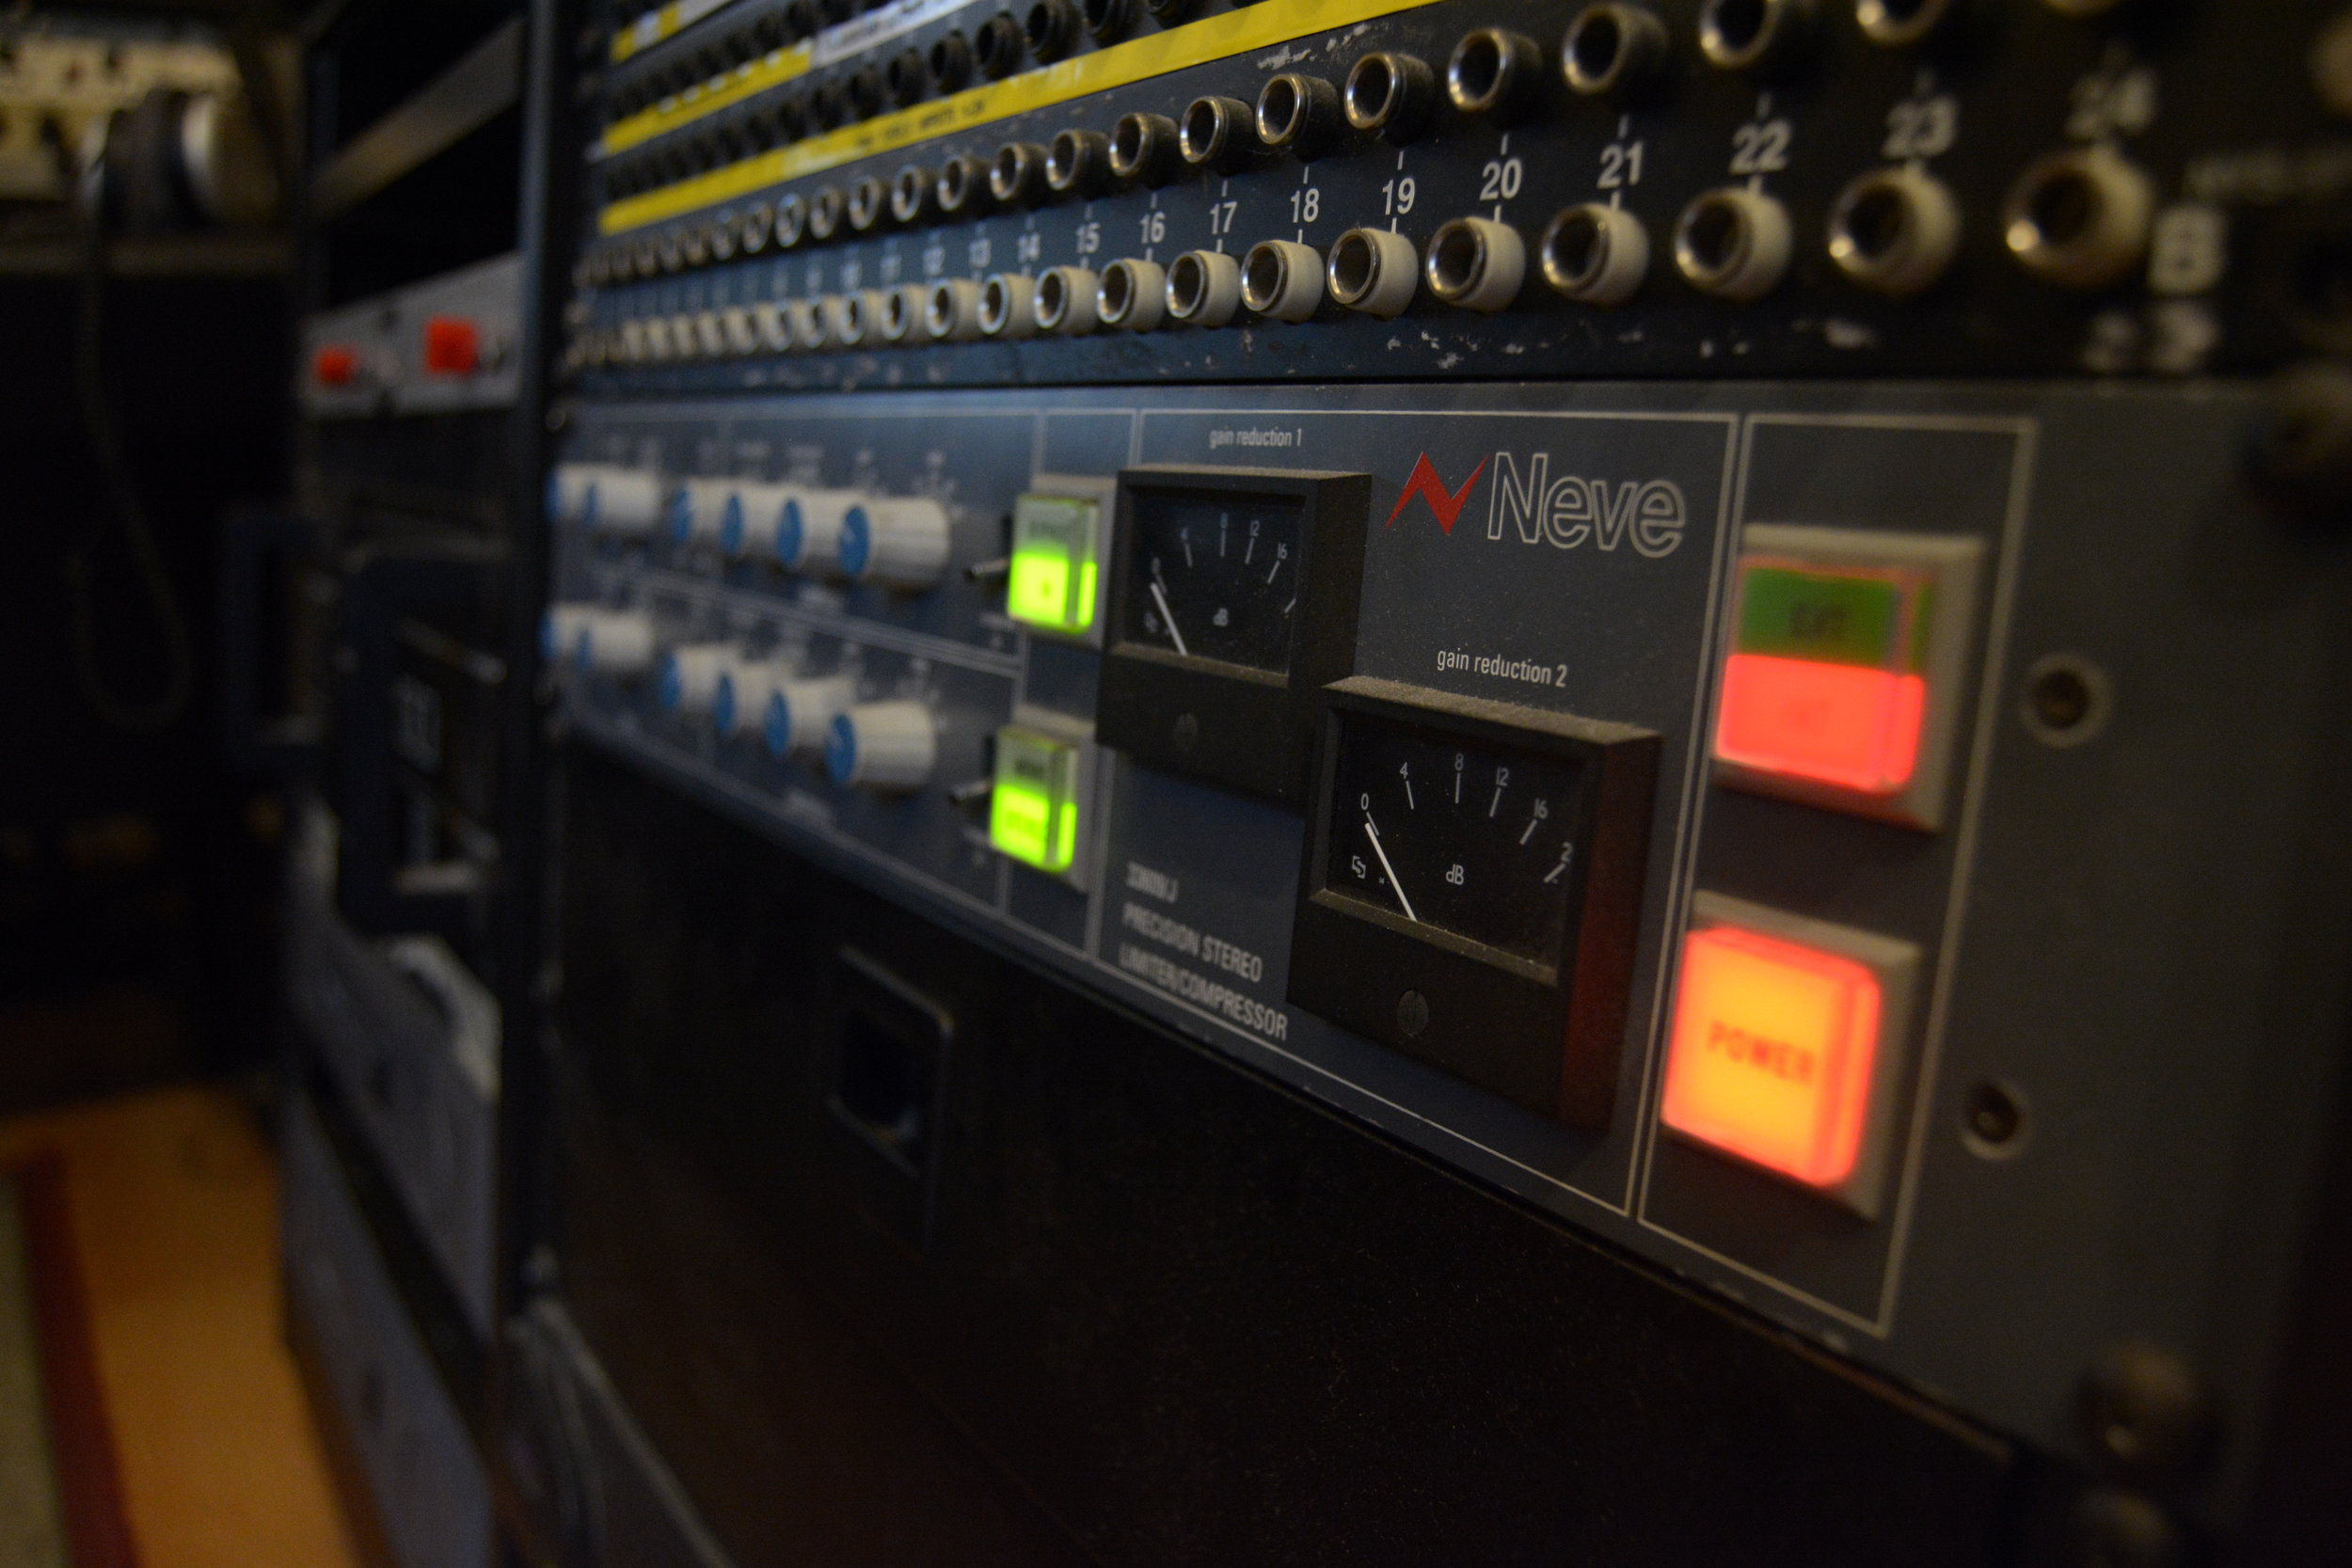 Our Neve 33609 Compressor in the rack